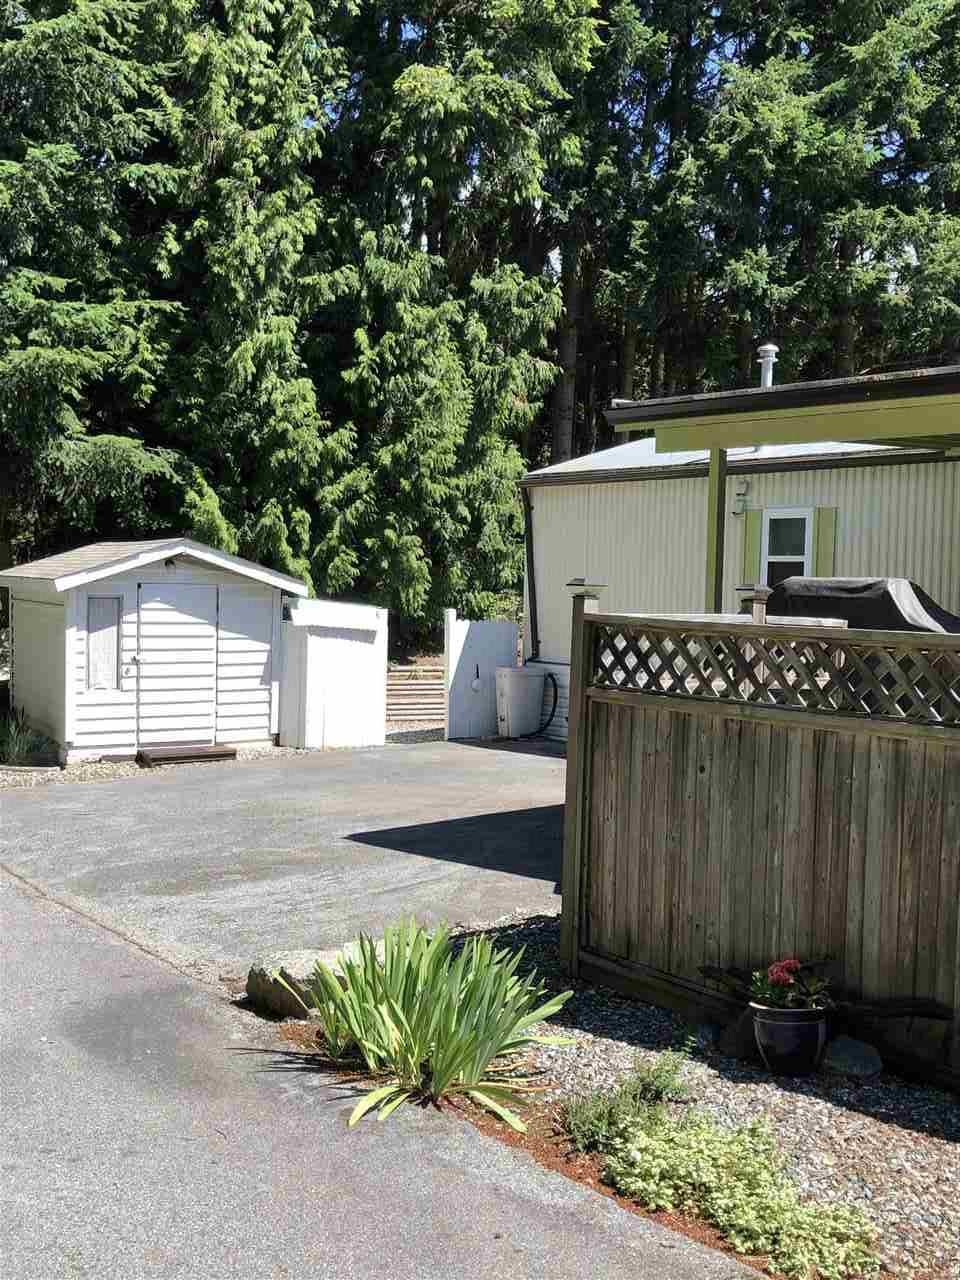 "Photo 4: Photos: 45 4116 BROWNING Road in Sechelt: Sechelt District Manufactured Home for sale in ""ROCKLAND WYND"" (Sunshine Coast)  : MLS®# R2472545"